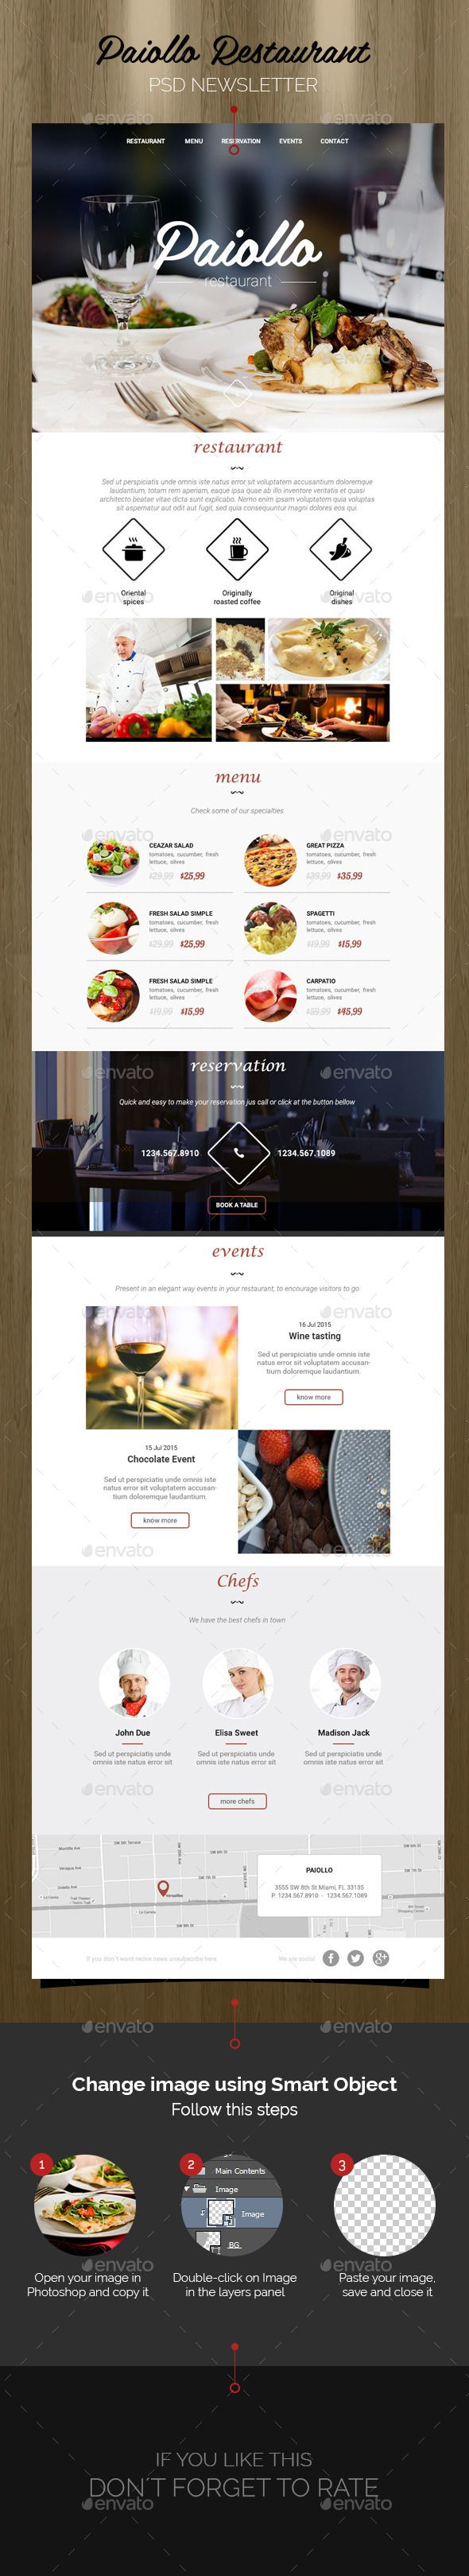 Paiollo Restaurant - Newsletter Template PSD - E-newsletters Web Elements